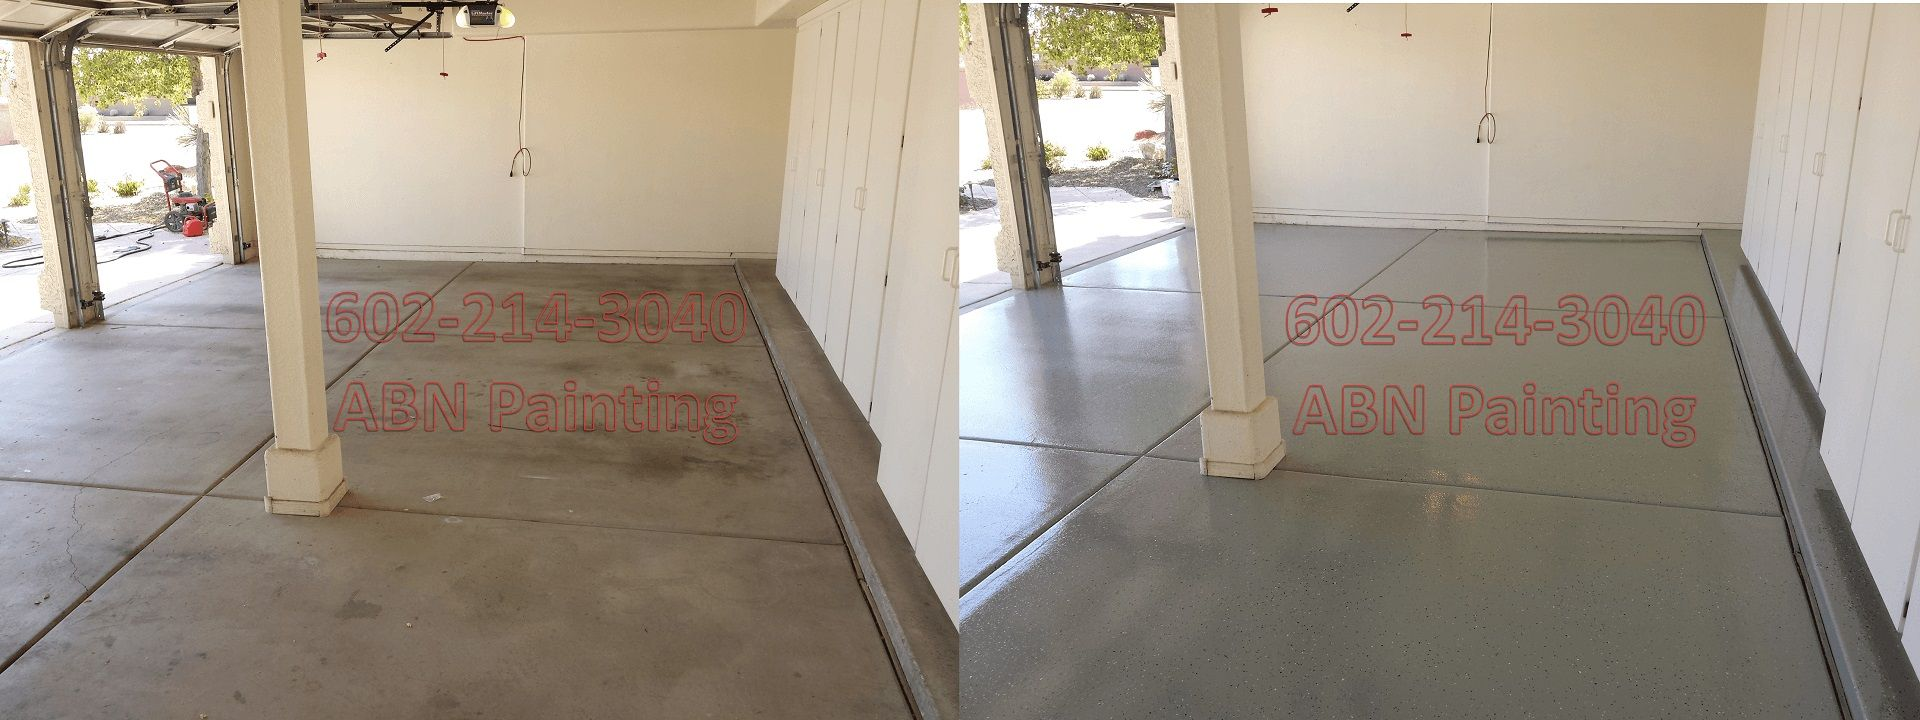 ultra floors of epoxy garage flooring cost industrial system for military